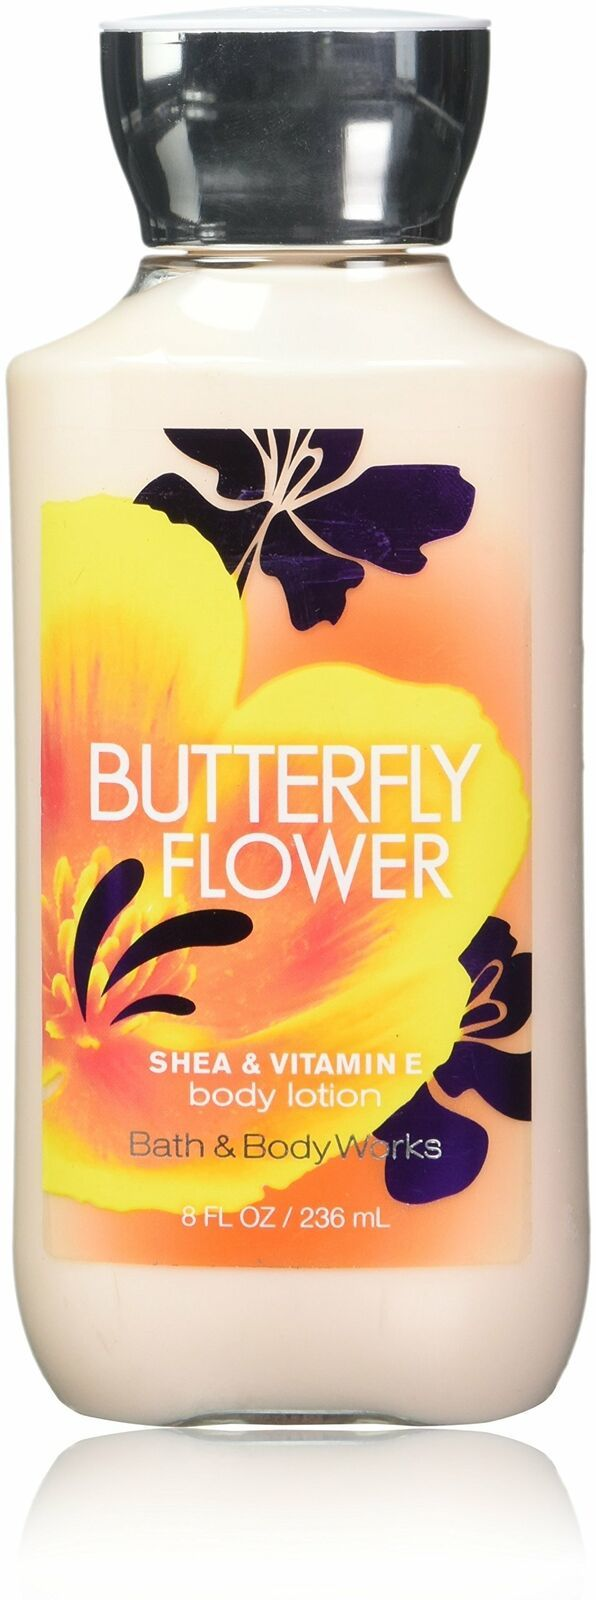 Primary image for LOT OF 2 Bath & Body Works Butterfly Flower Body Lotion 8 oz Shea & Vitamin E